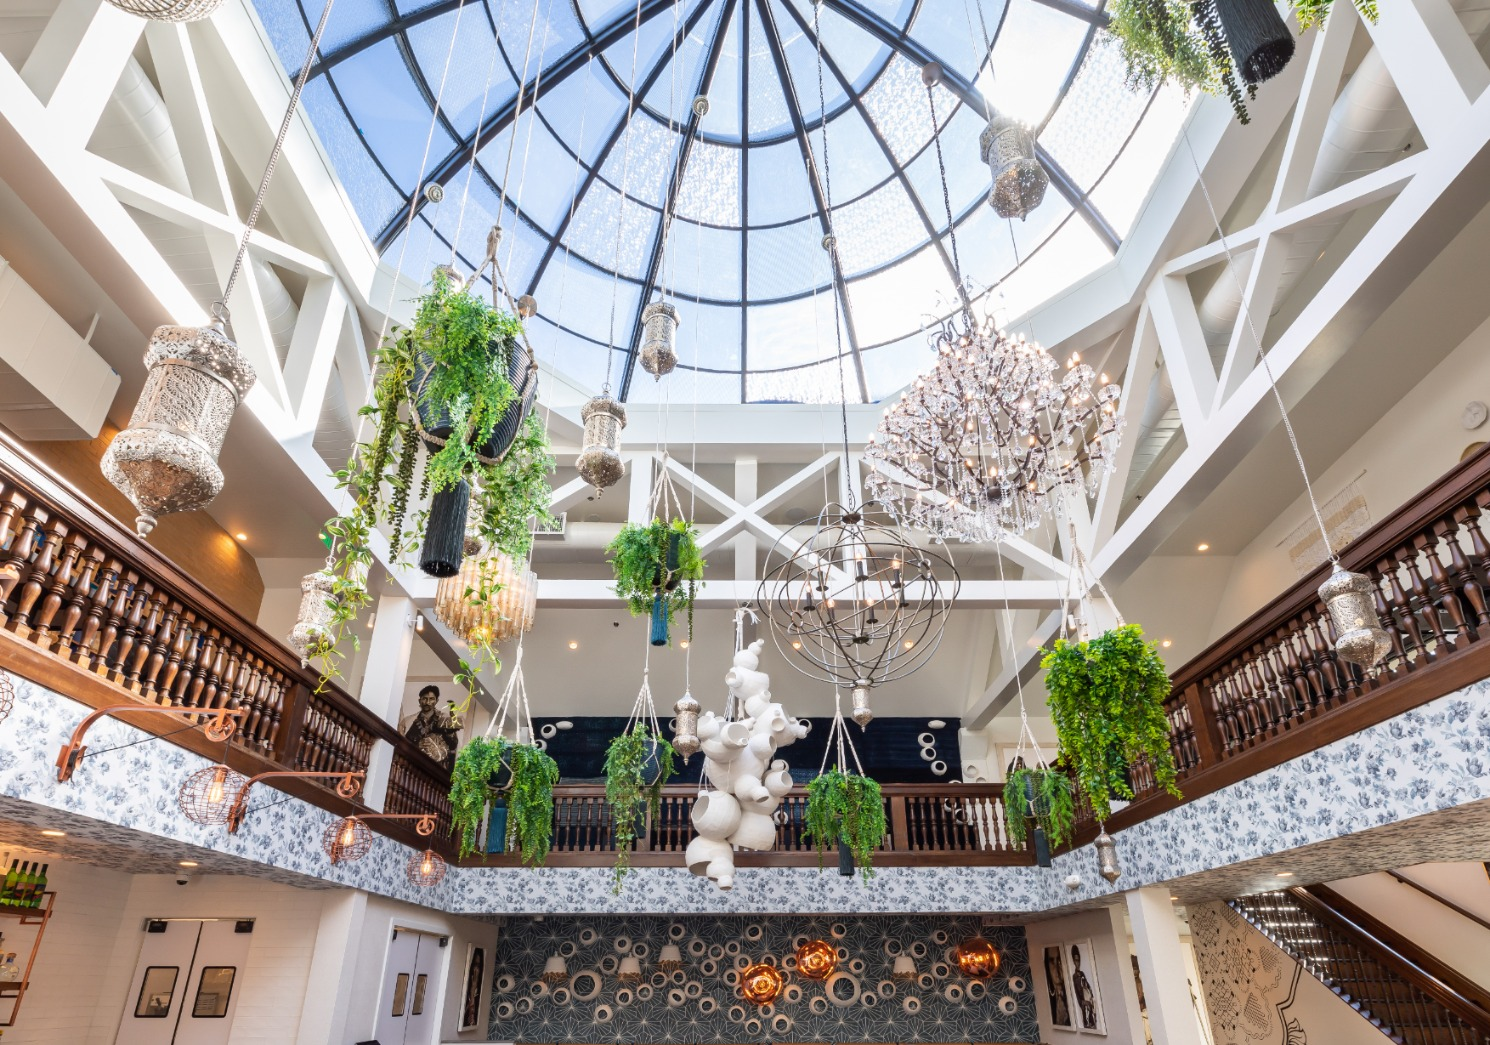 Skylight with hanging plants and chandelier